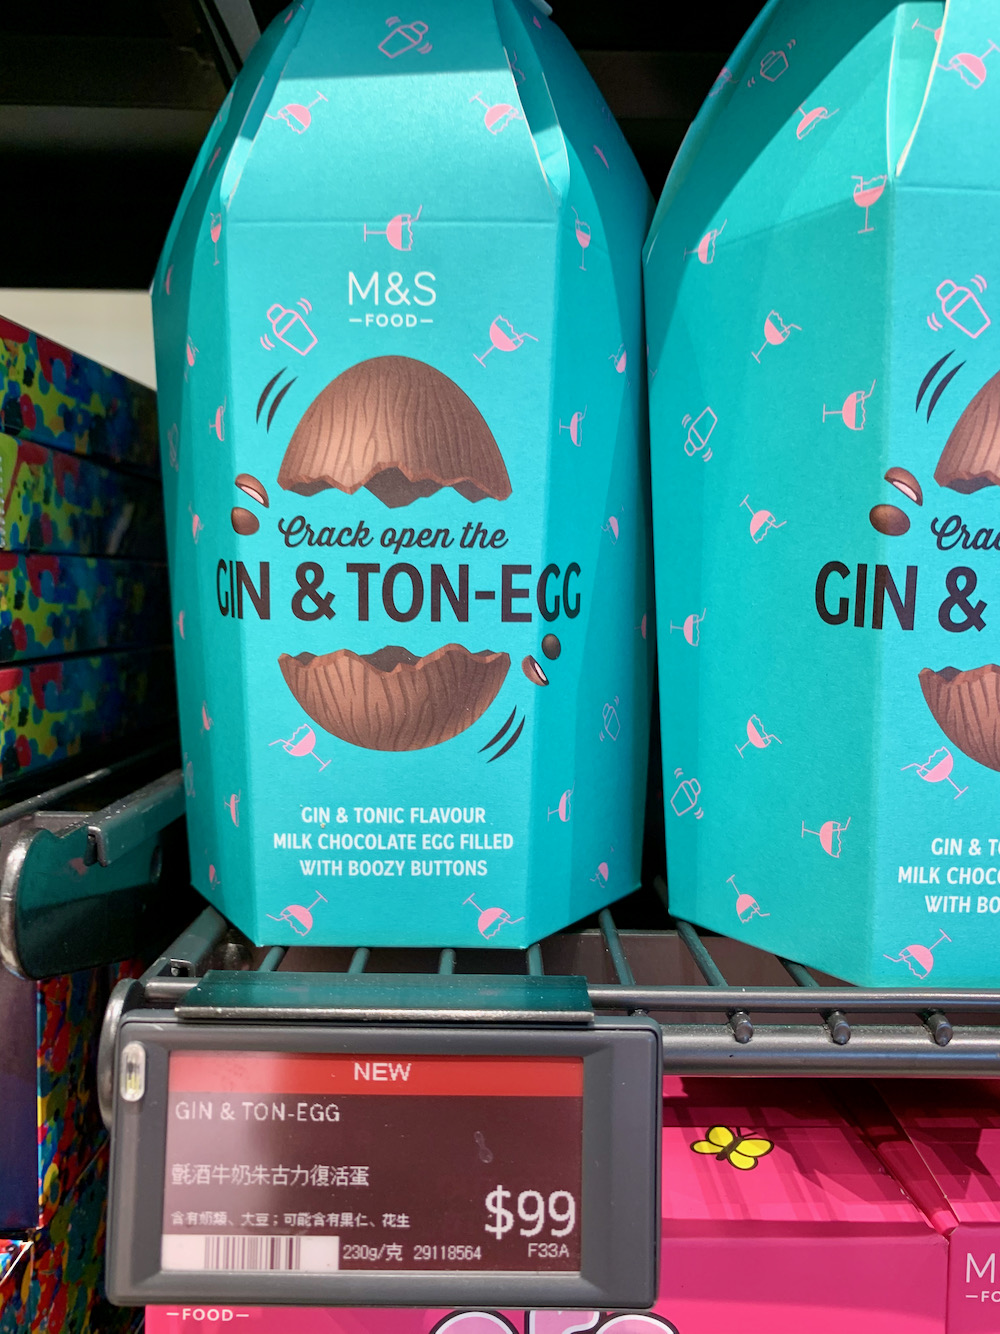 Gin and tonic Easter egg